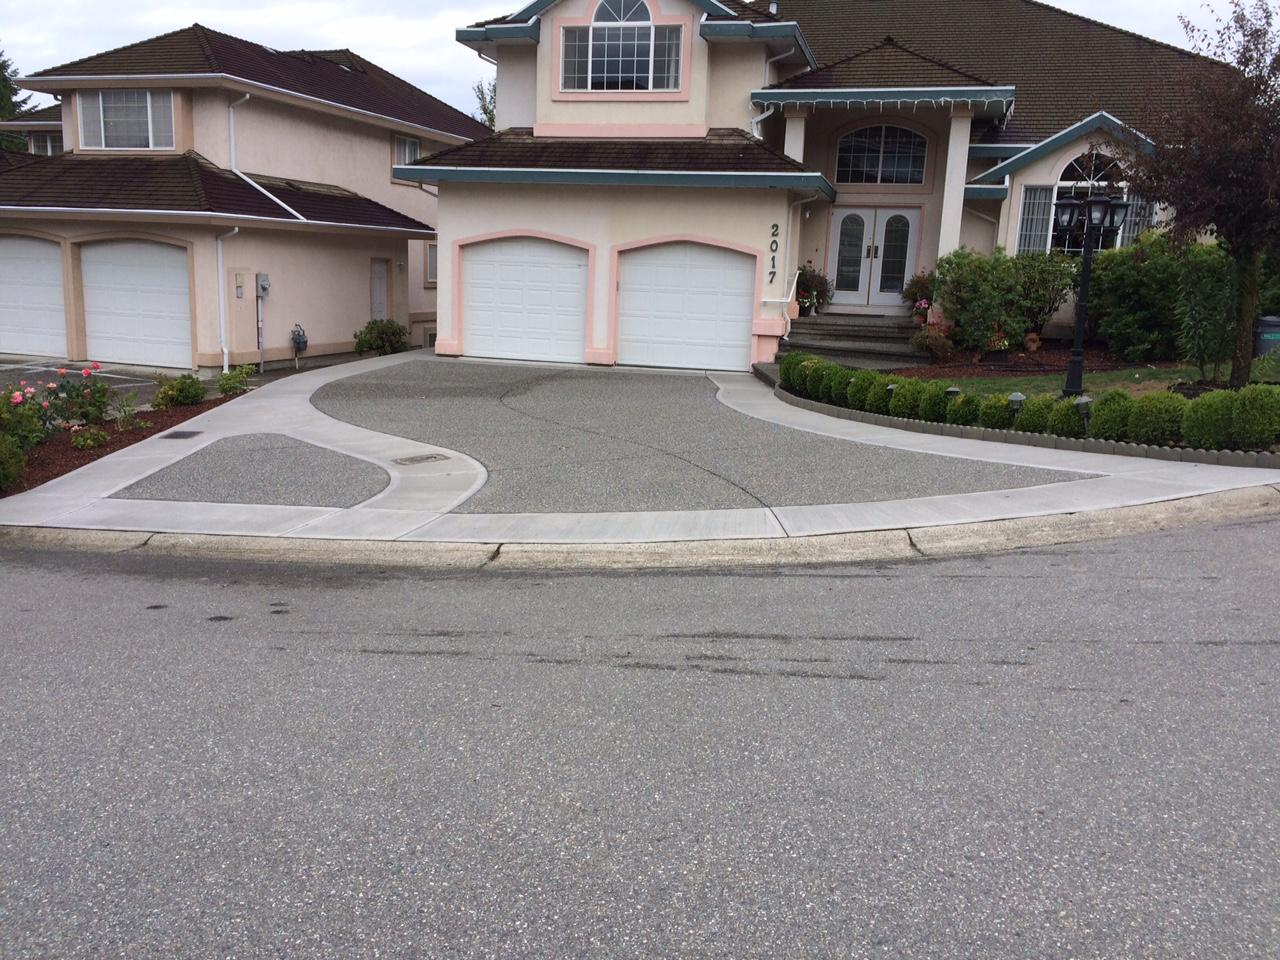 Exposed-Concrete-Driveway-Expansion-After-Tree-Removal